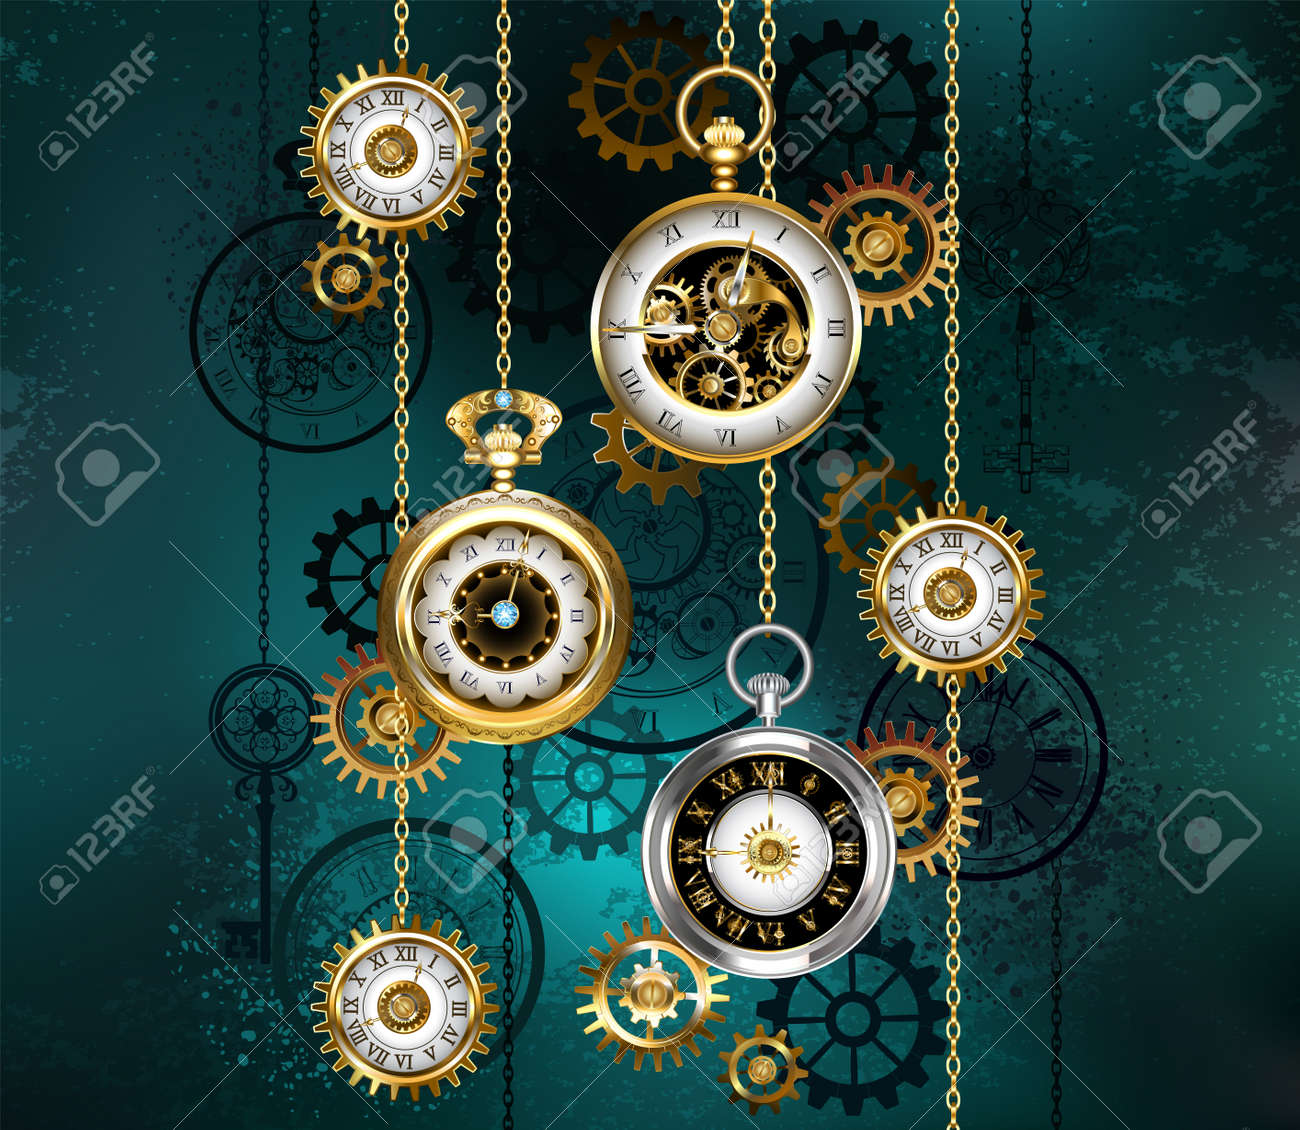 Jewelry, antique watches with gold chains, brass gears and silhouette dials on green textured background. Steampunk style. - 155774723